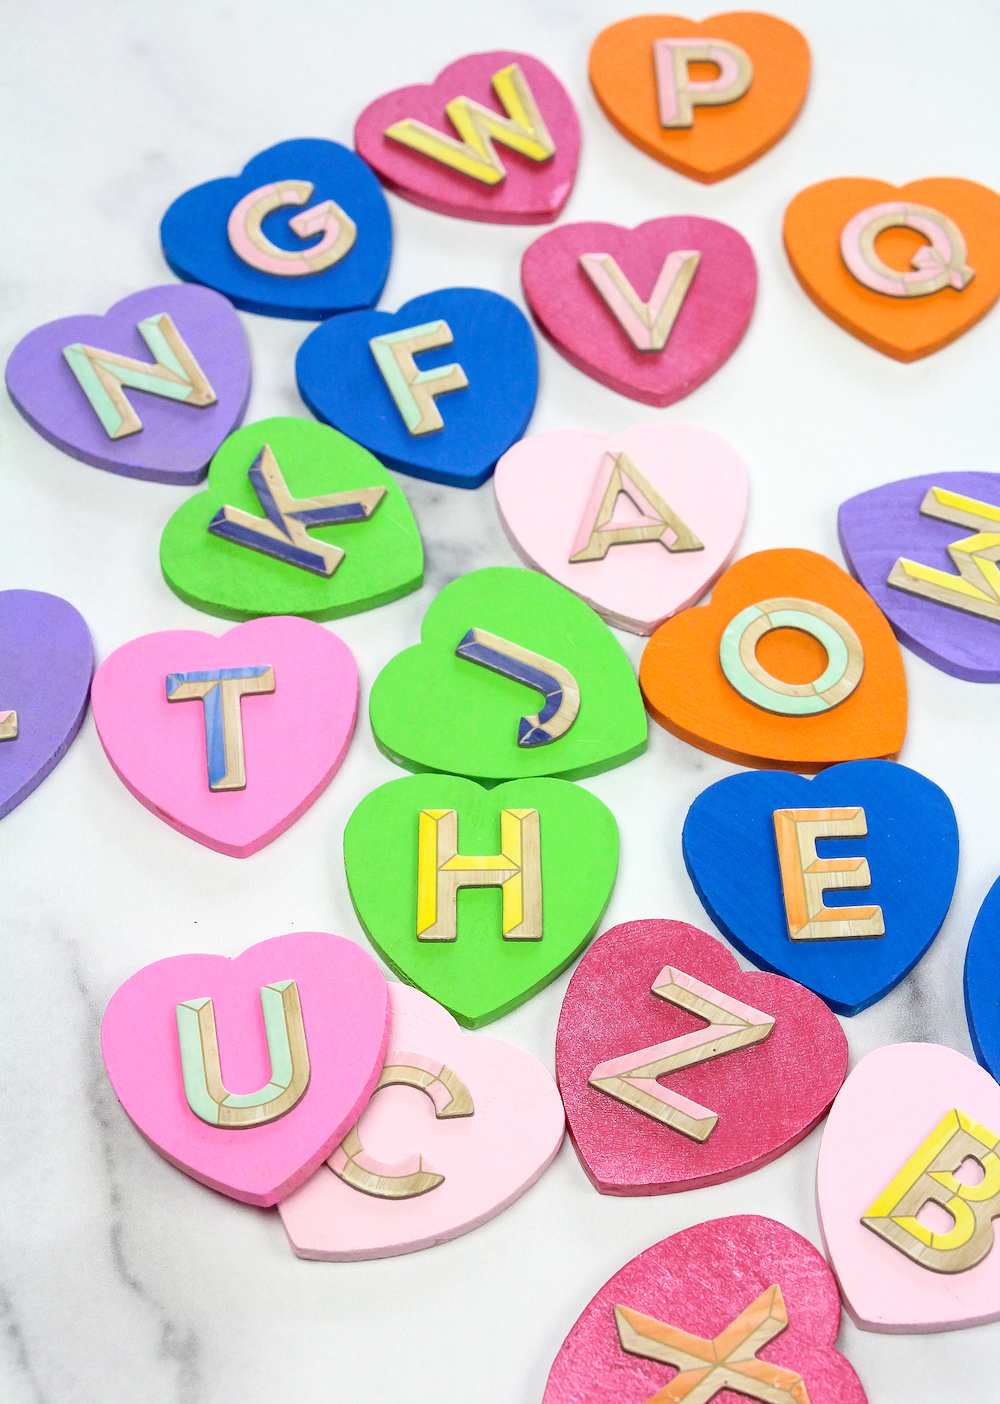 Toddler Colorful Hearts Matching Game scattered